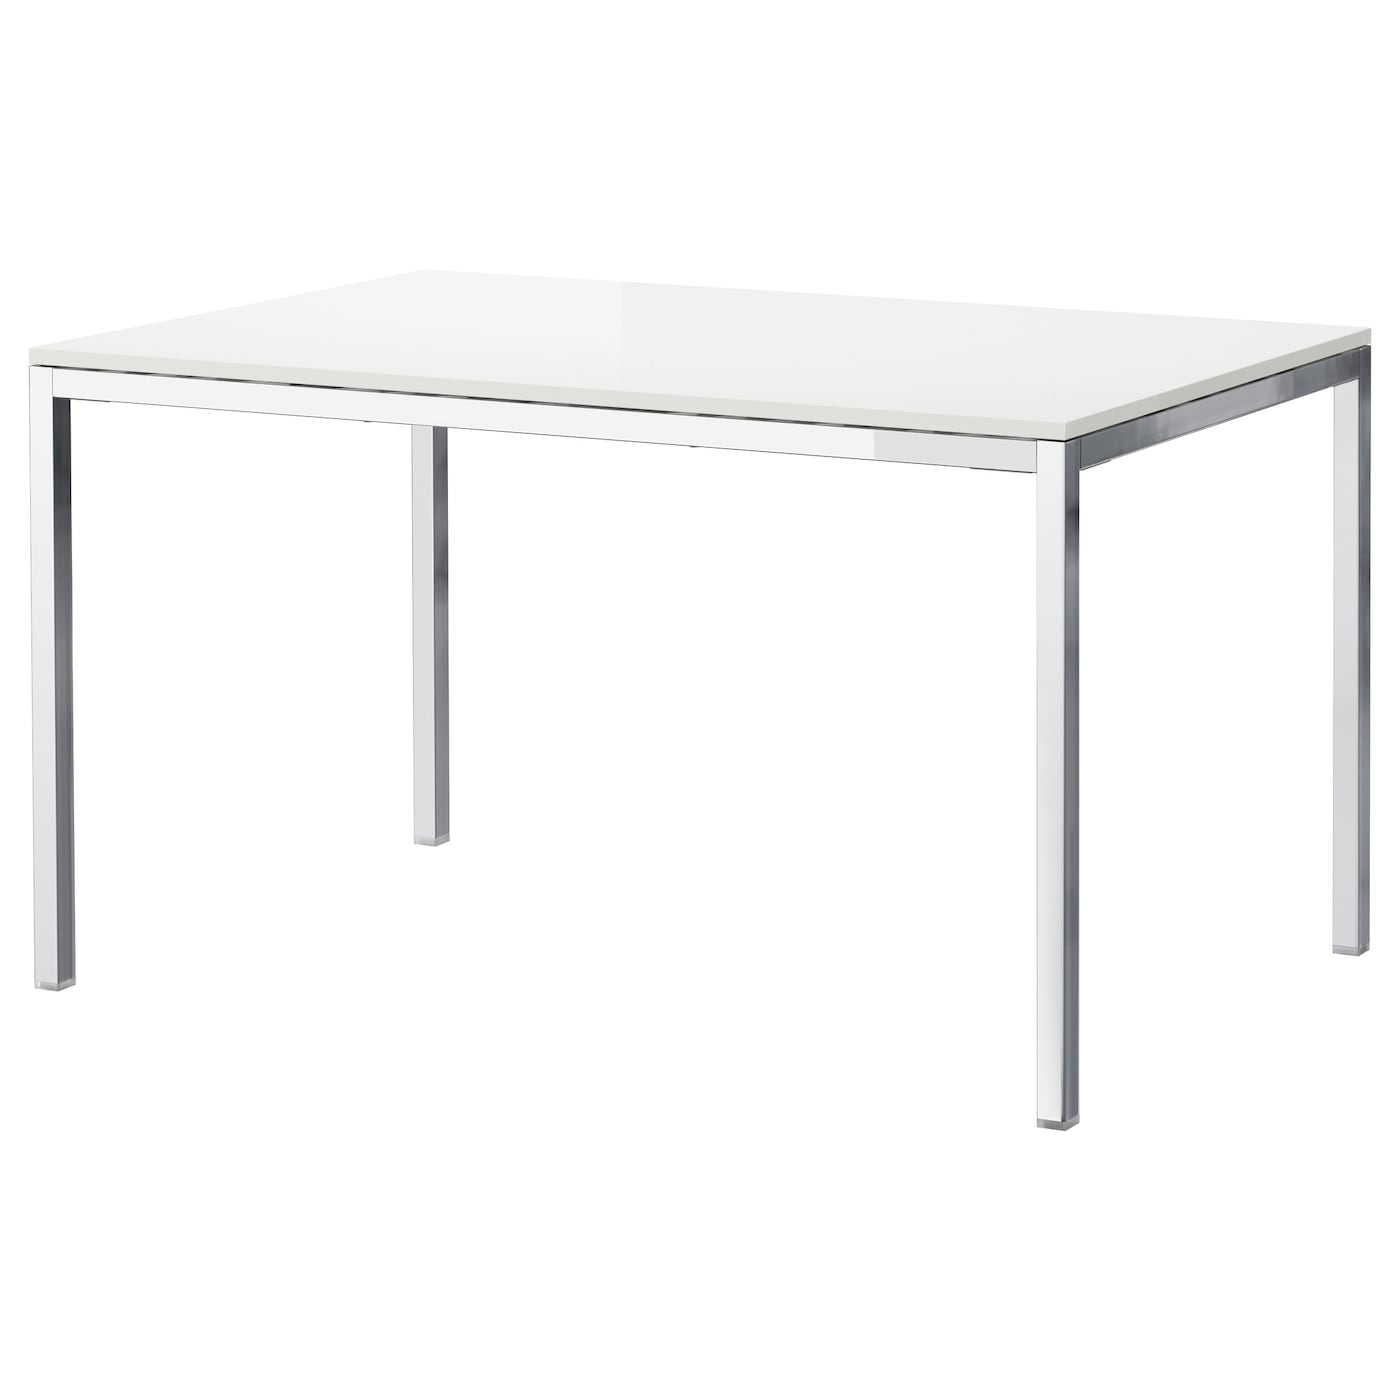 Torsby table chrome plated high gloss white 135x85 cm ikea for Table ikea blanche